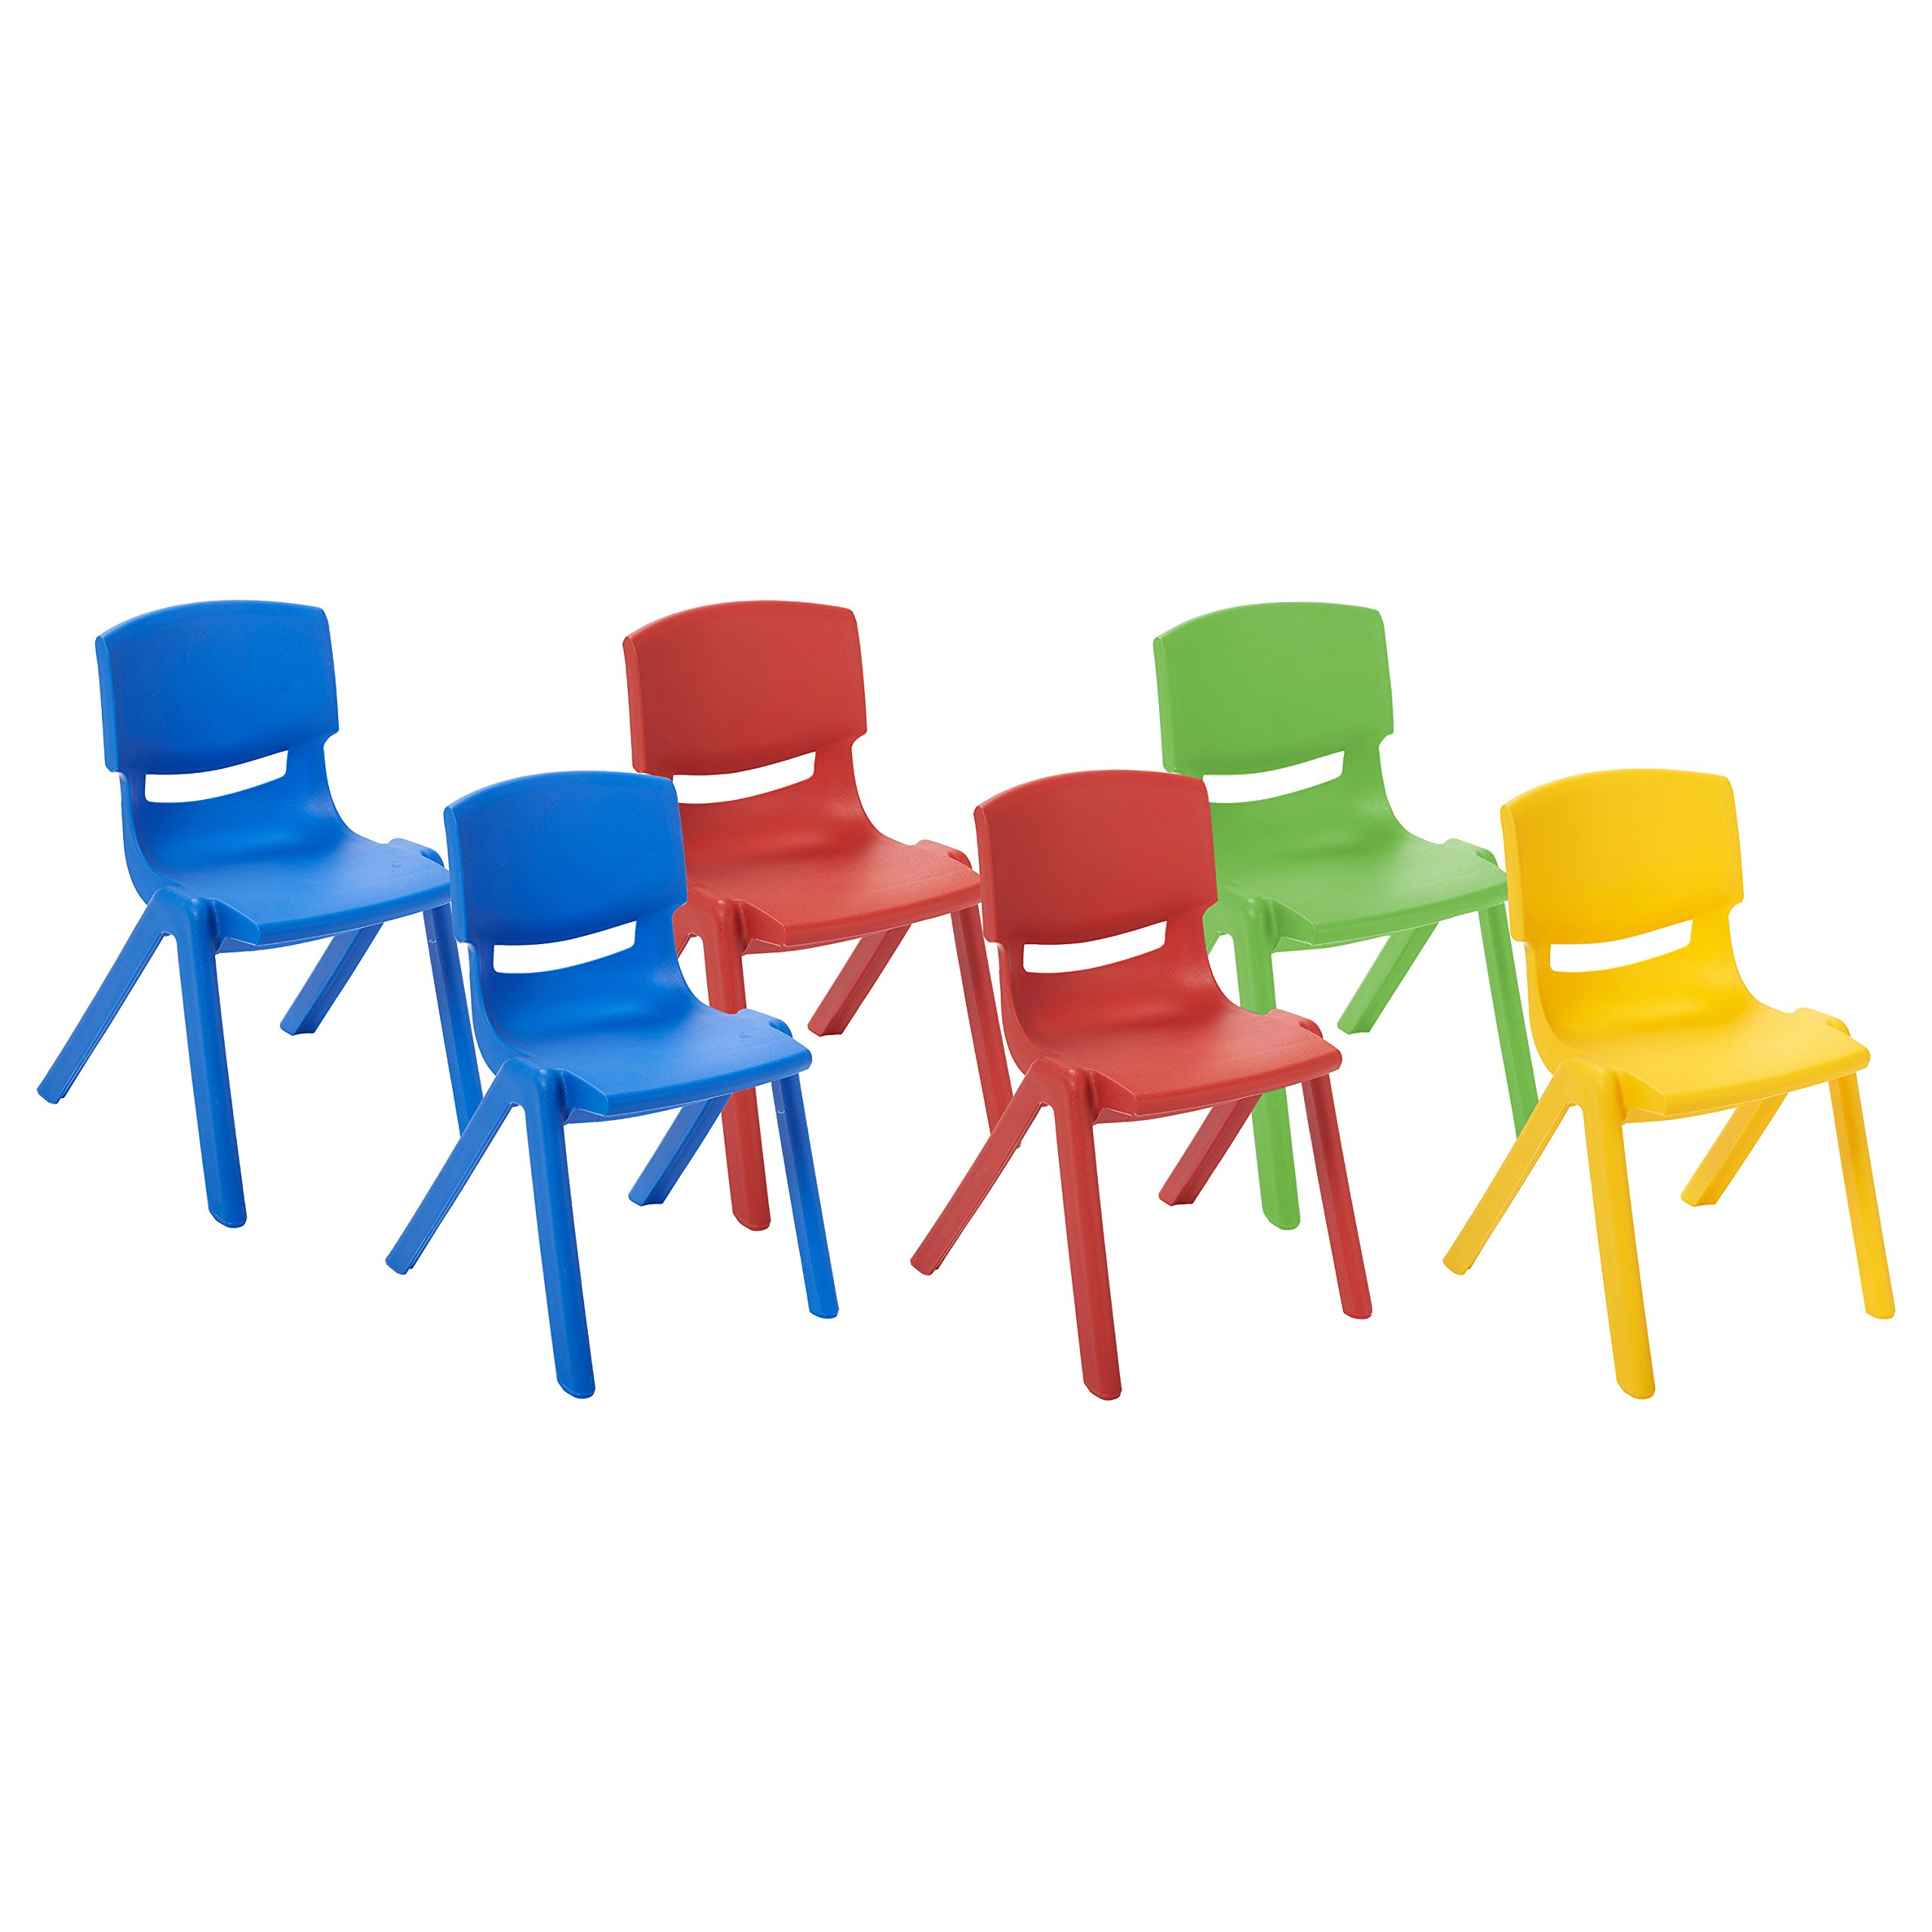 ECR4Kids School Stack Resin Chair, Indoor/Outdoor Plastic Stacking Chairs for Kids, 10 inch Seat Height, Assorted Colors (6-Pack) by ECR4Kids